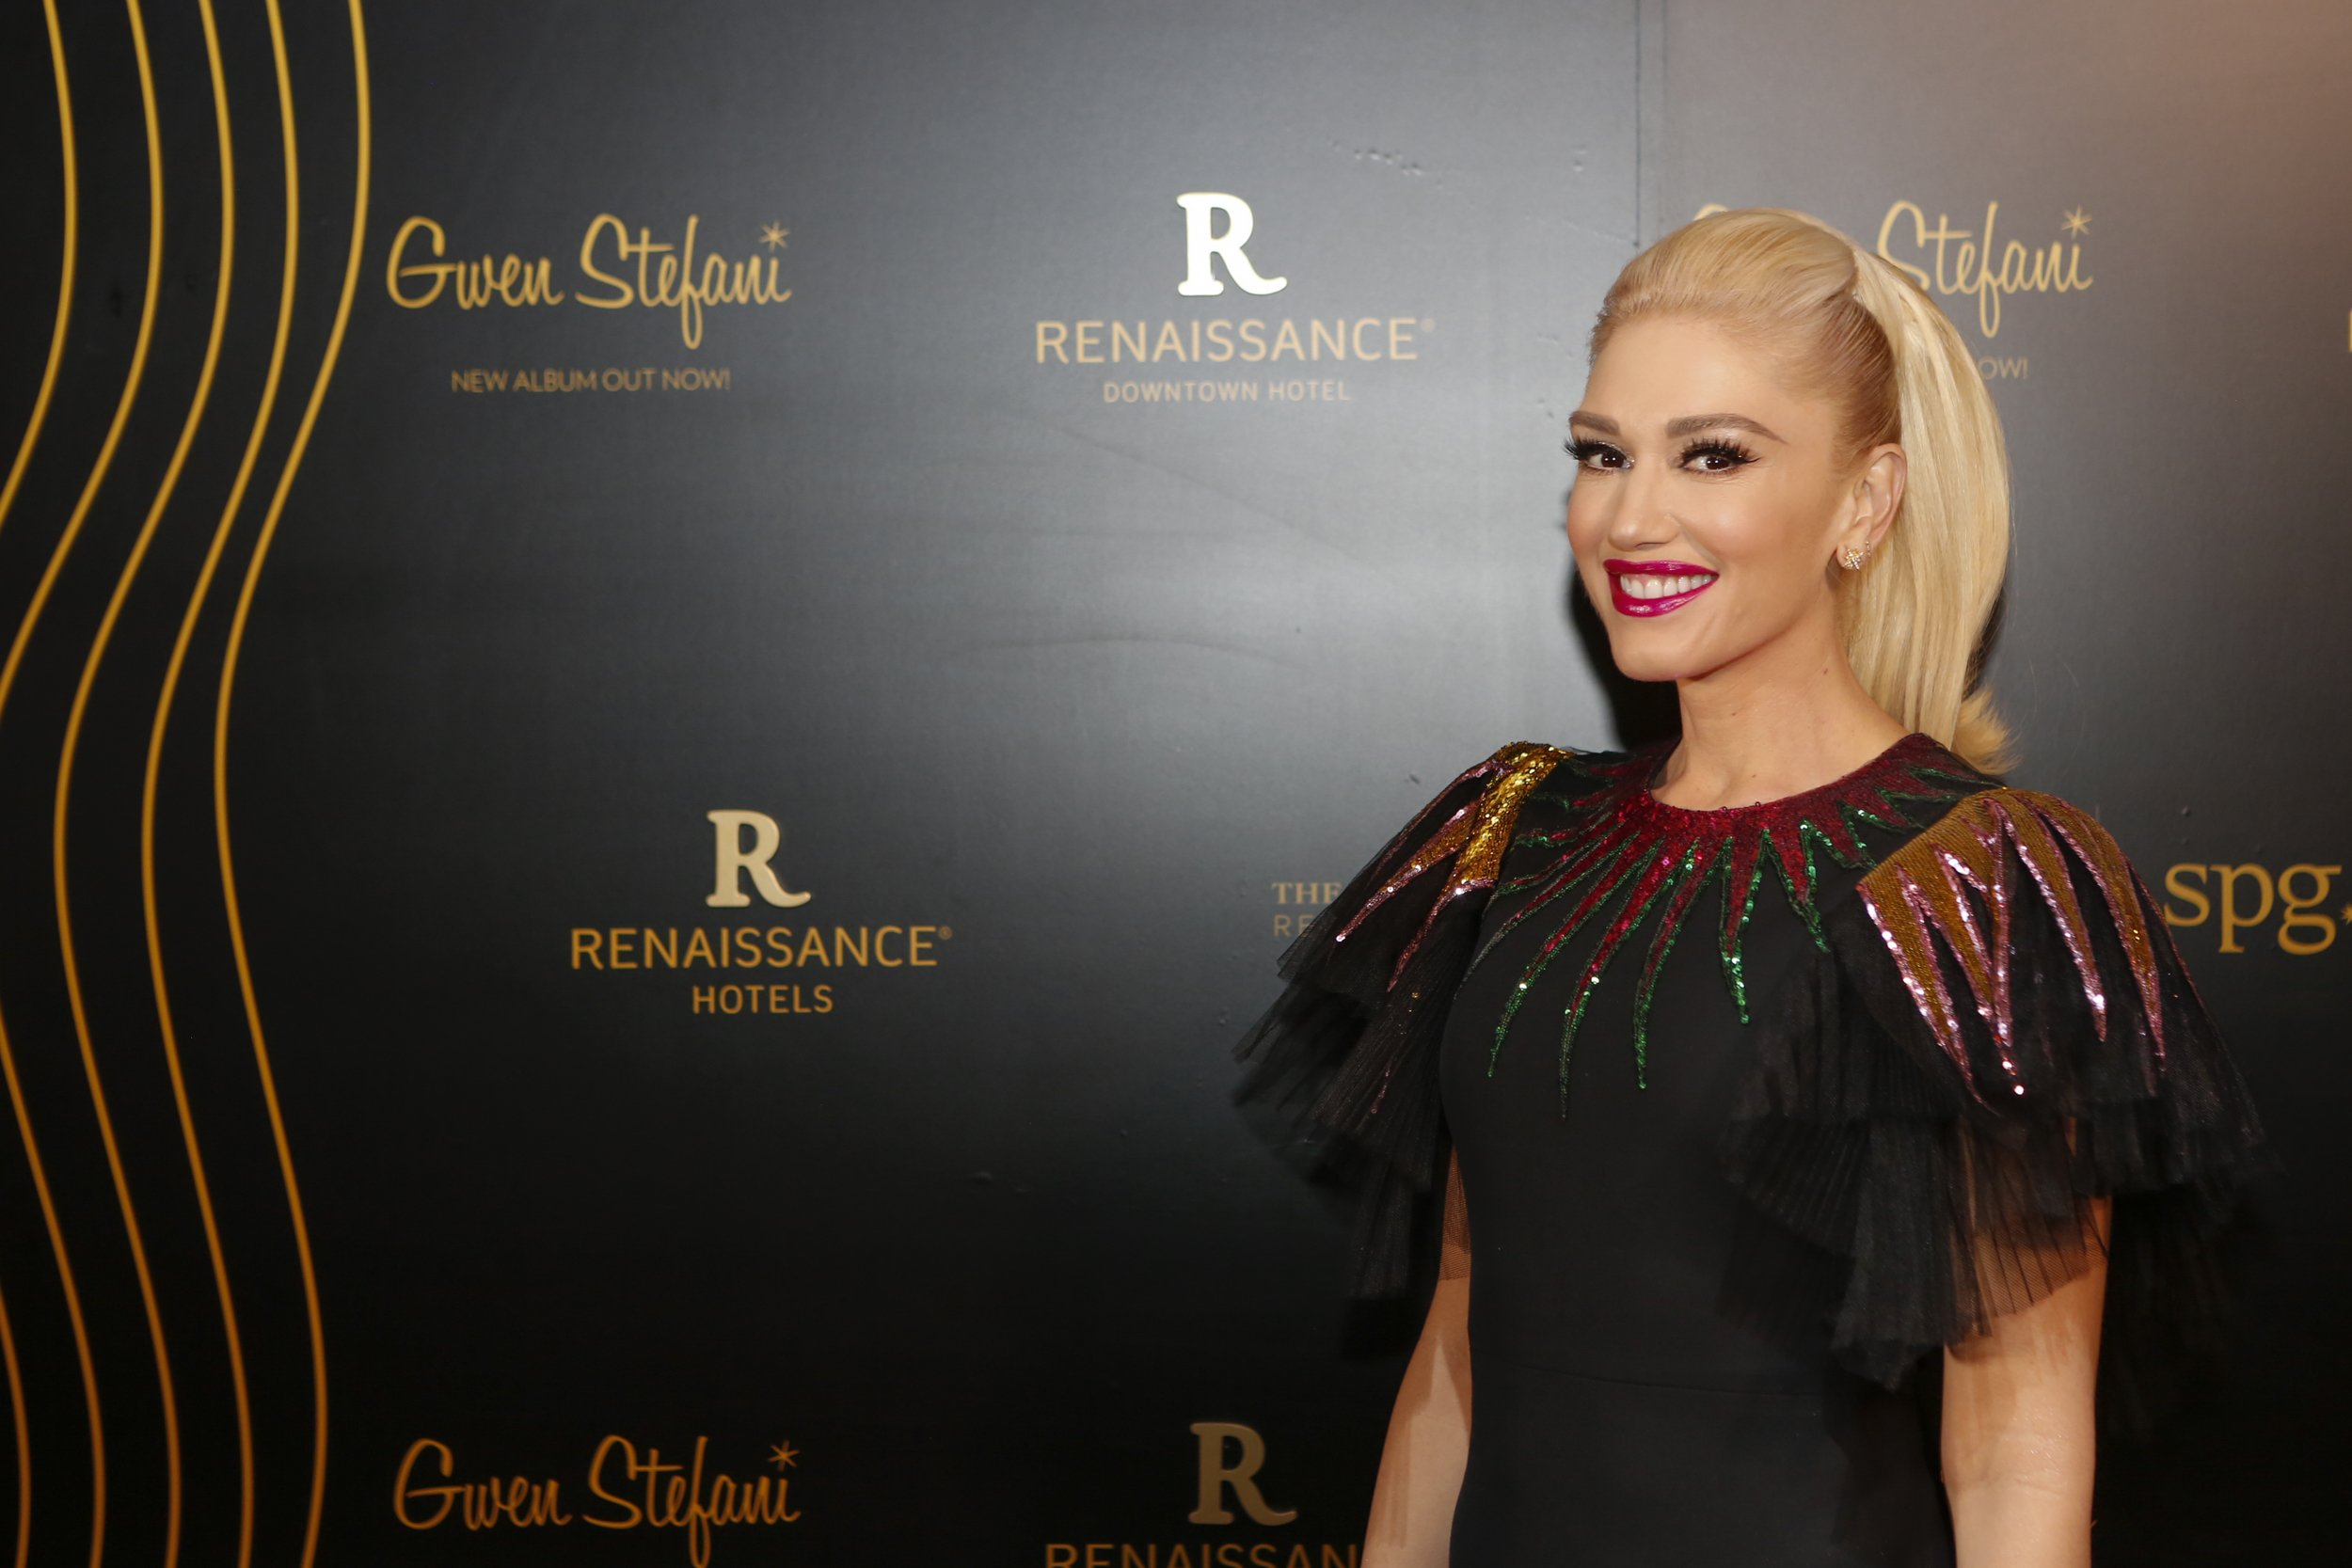 Gwen Stefani attends the opening of the Renaissance Downtown Hotel, Dubai on December 4, 2017.   Photo: Getty Images